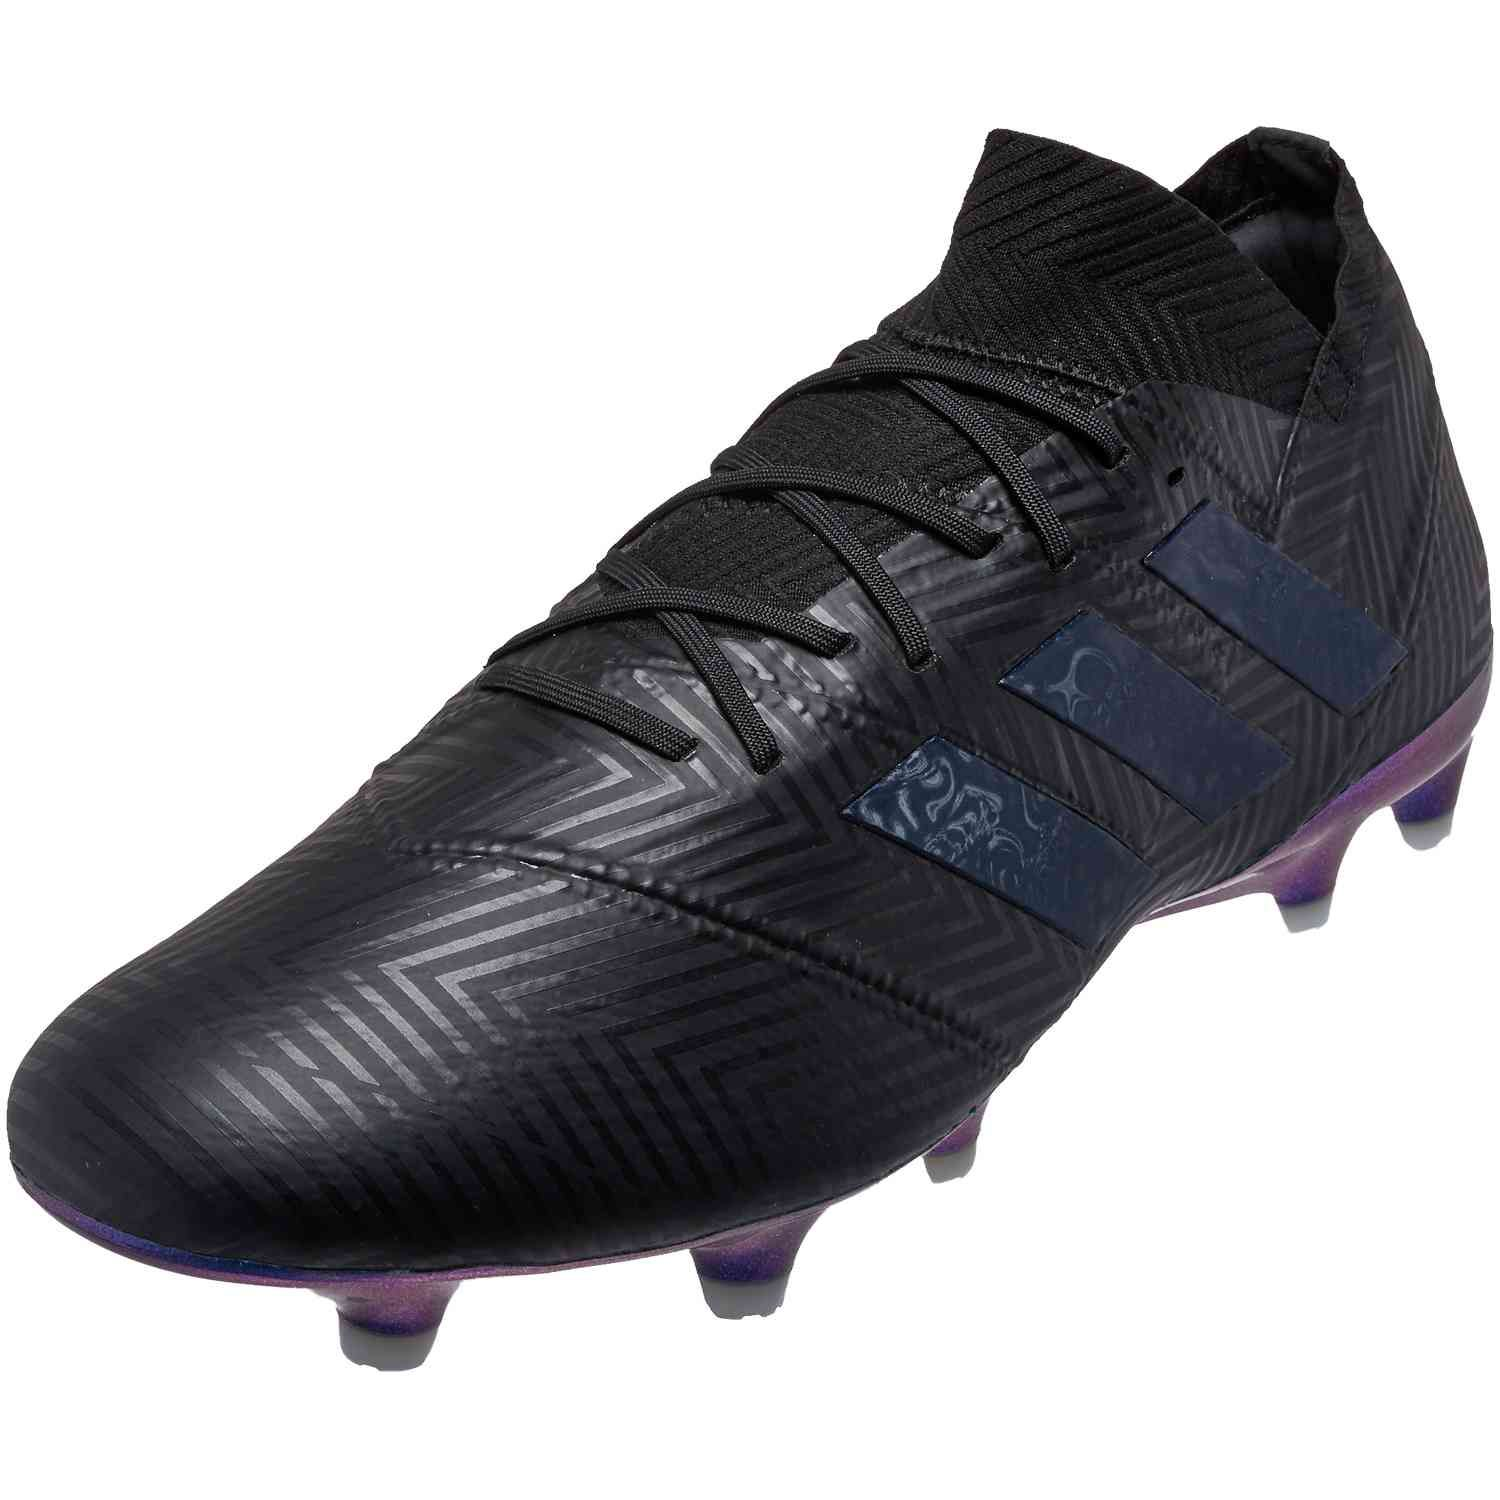 official photos 0314a 5a018 Shadow Mode pack adidas Nemeziz 18.1 At SoccerPro.